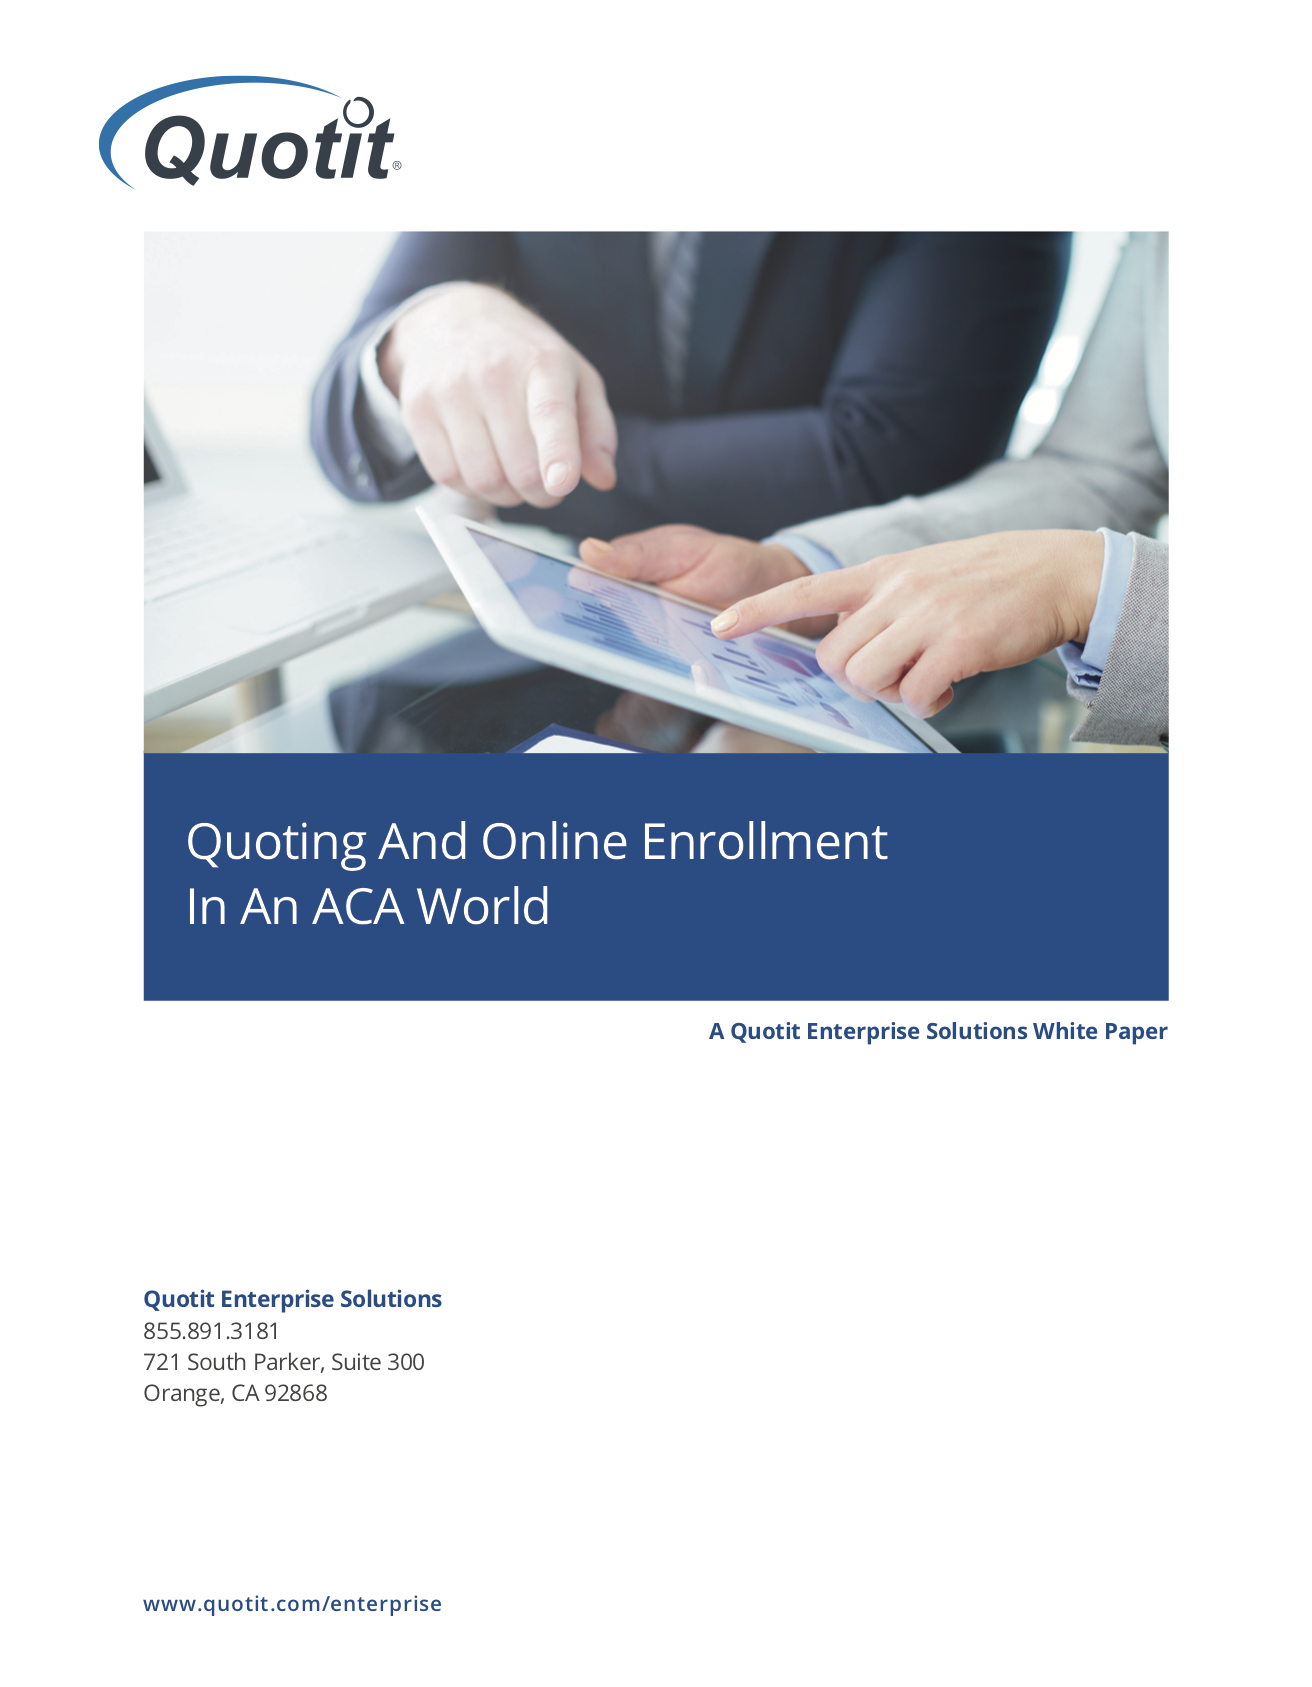 Quoting and Online Enrollment In An ACA World (cover)